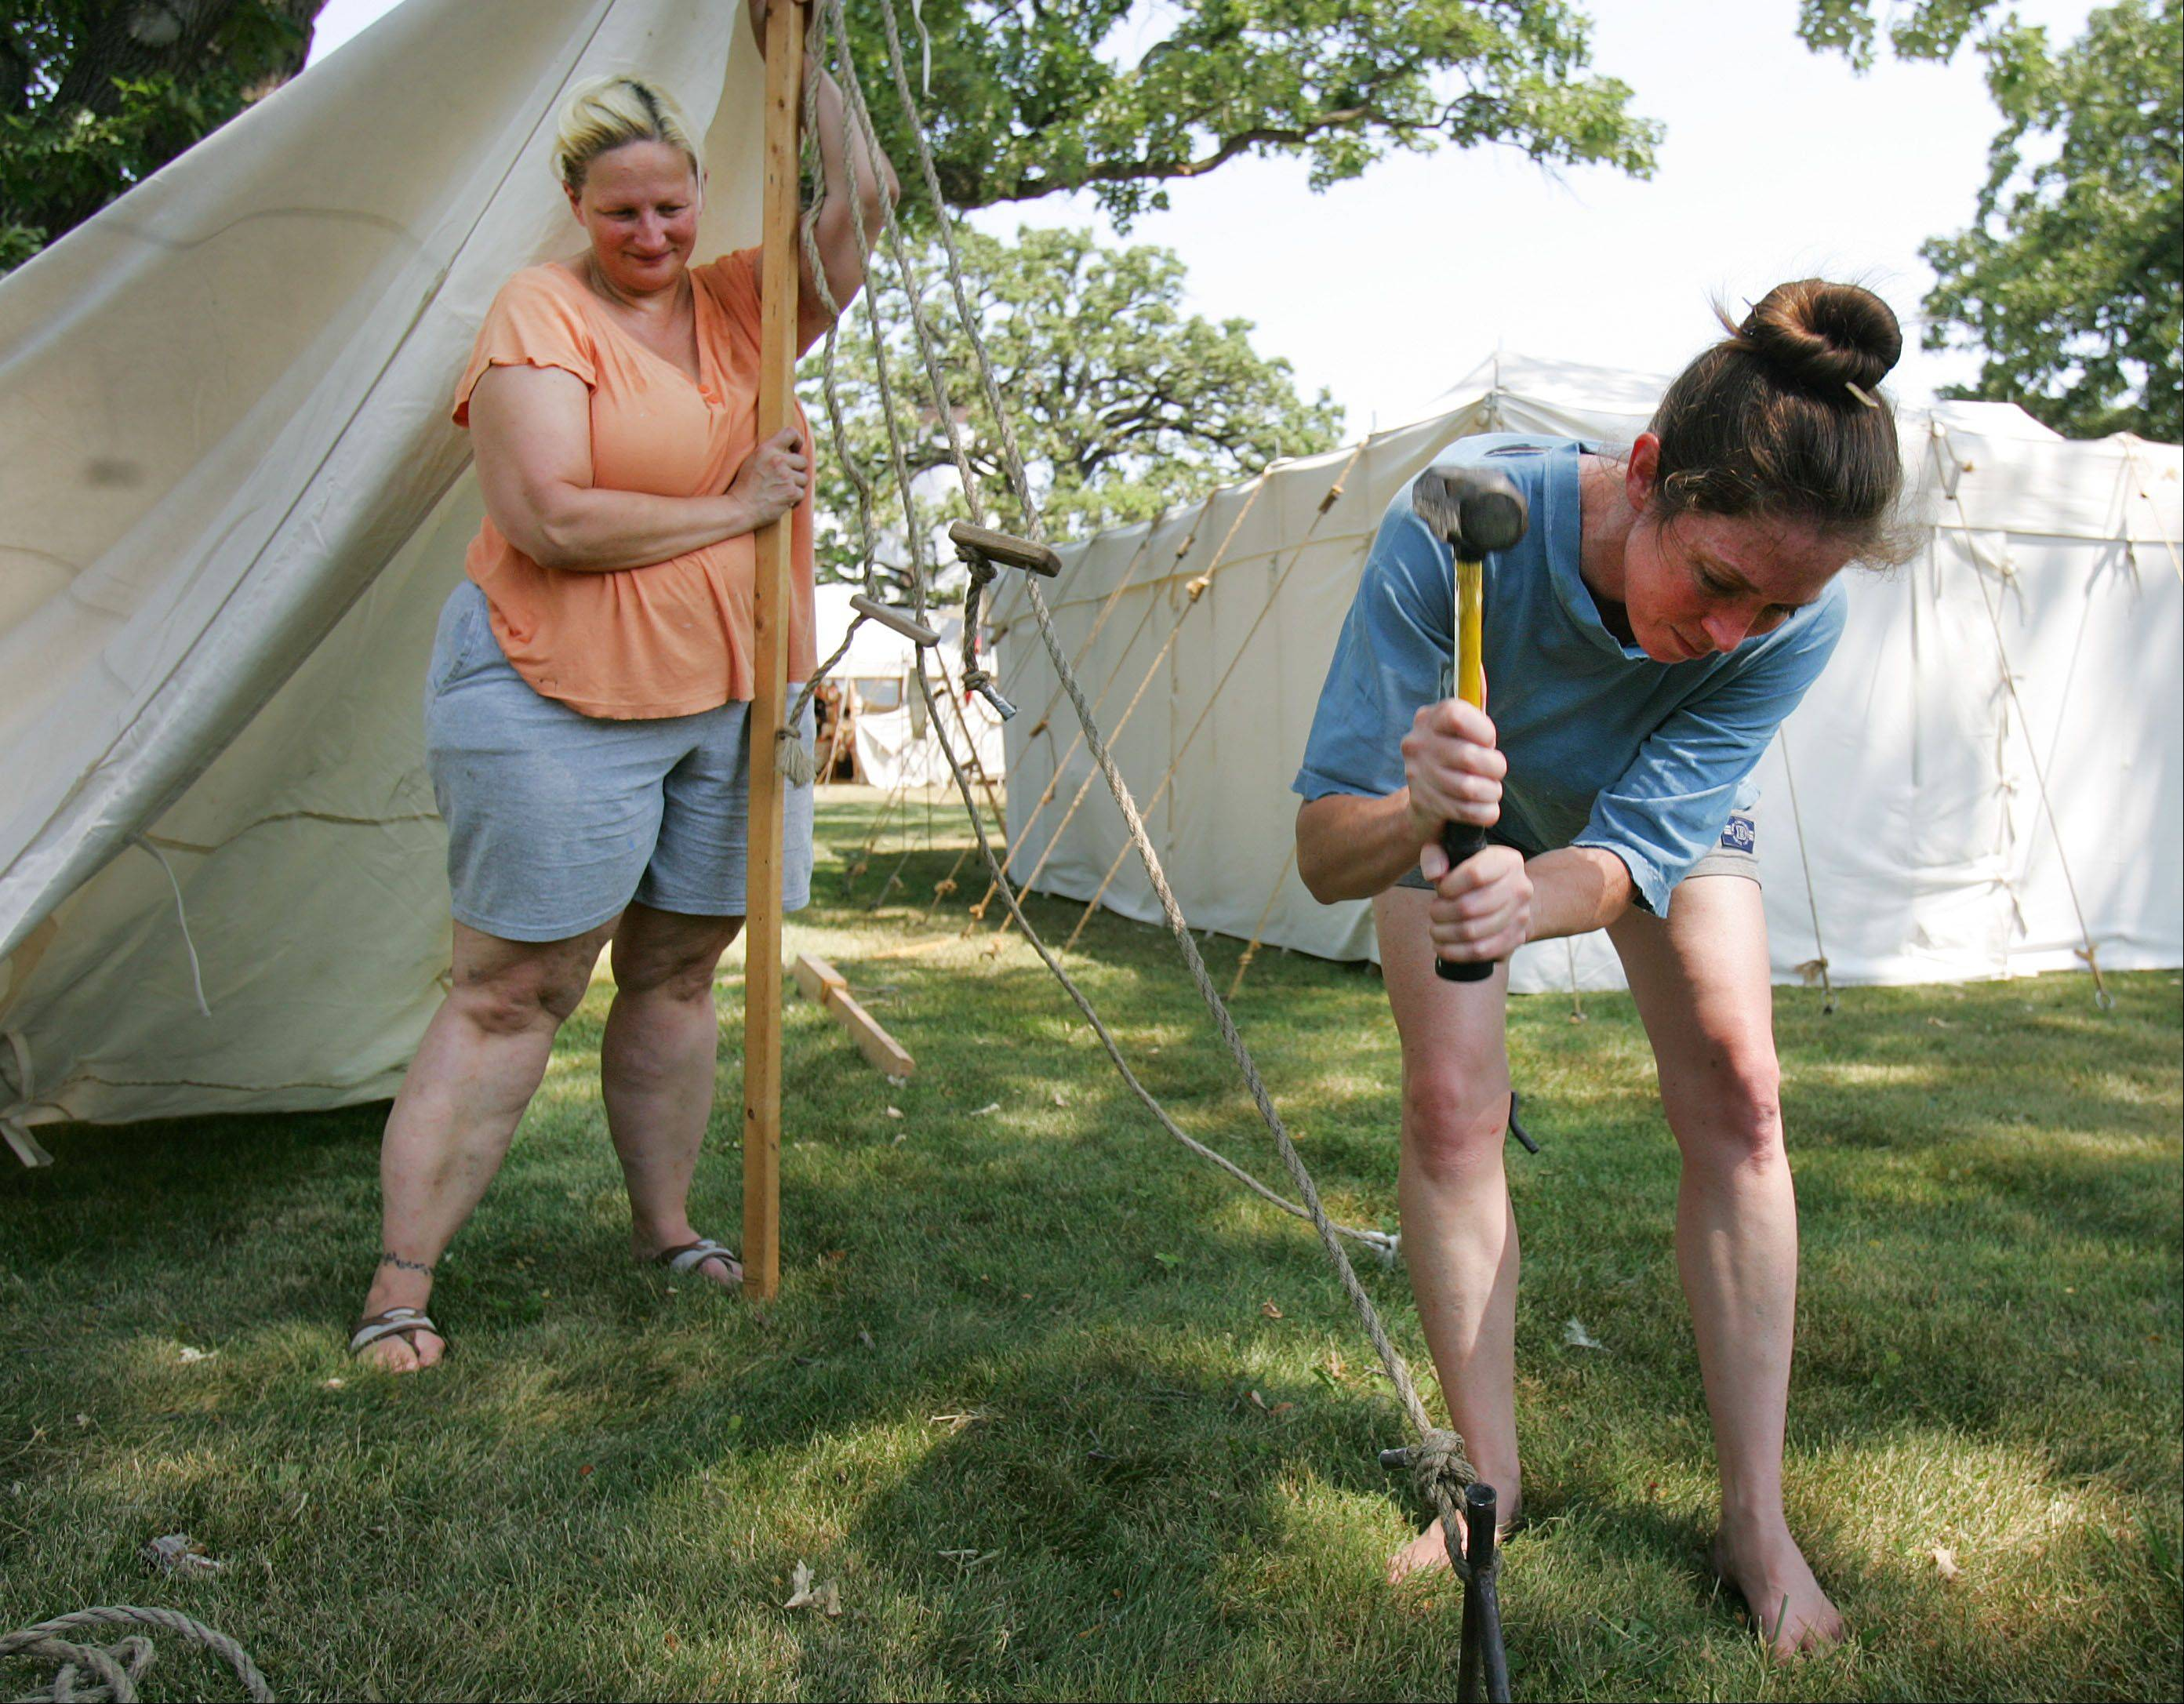 Soap makers Lori Malina of Lake Villa, left, and Laura Zielinski of Kenosha, Wisconsin set up their tent in preparation for Civil War days at Lakewood Forest Preserve near Wauconda .